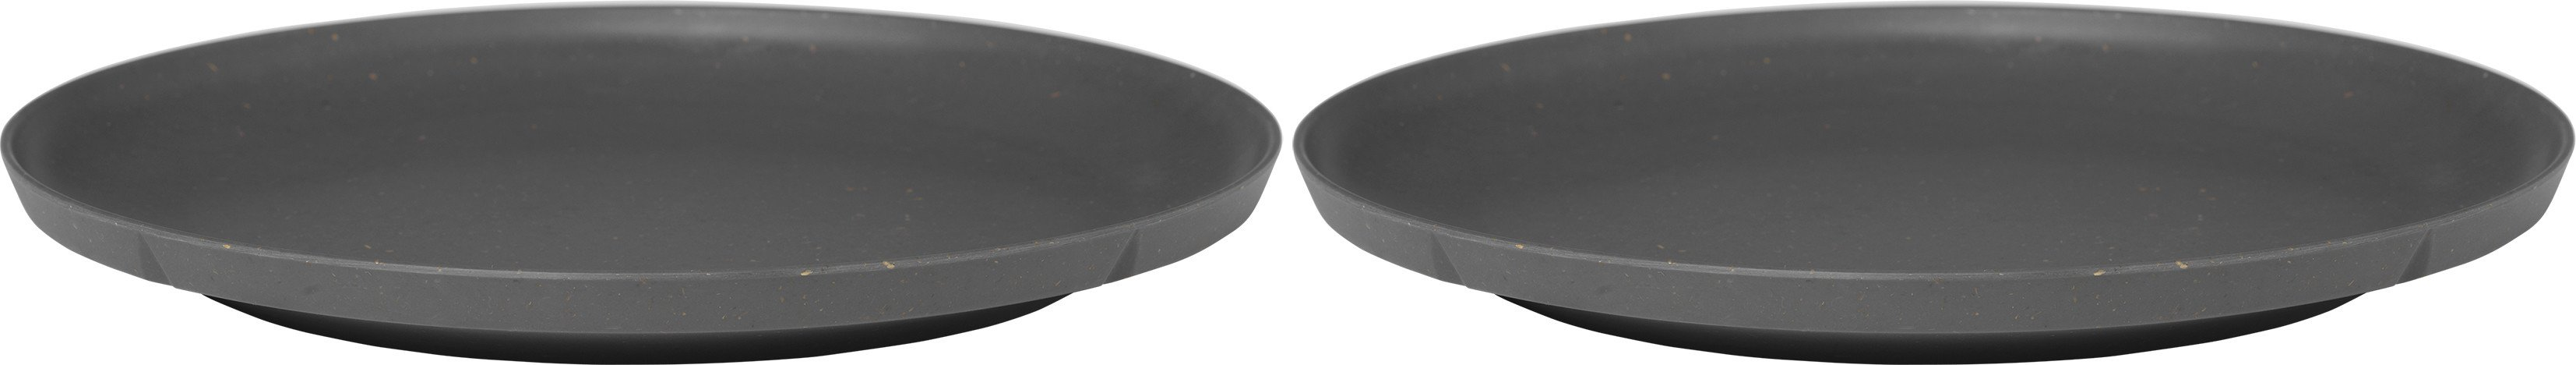 Grand Cru Take Plate 2 pcs. Ø26 cm Dark Grey, Rosendahl